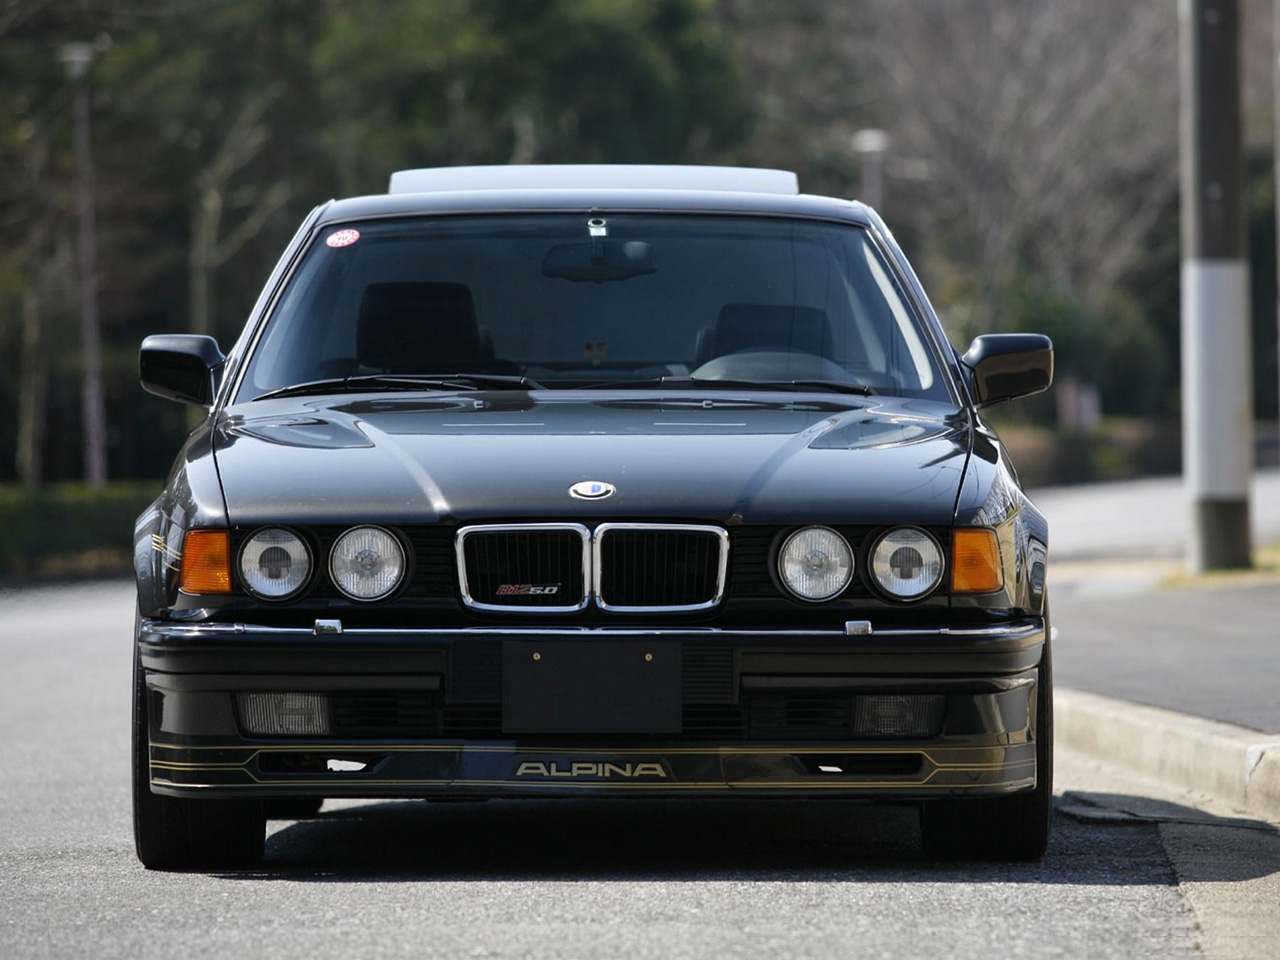 Topworldauto Photos Of Alpina B12 Photo Galleries